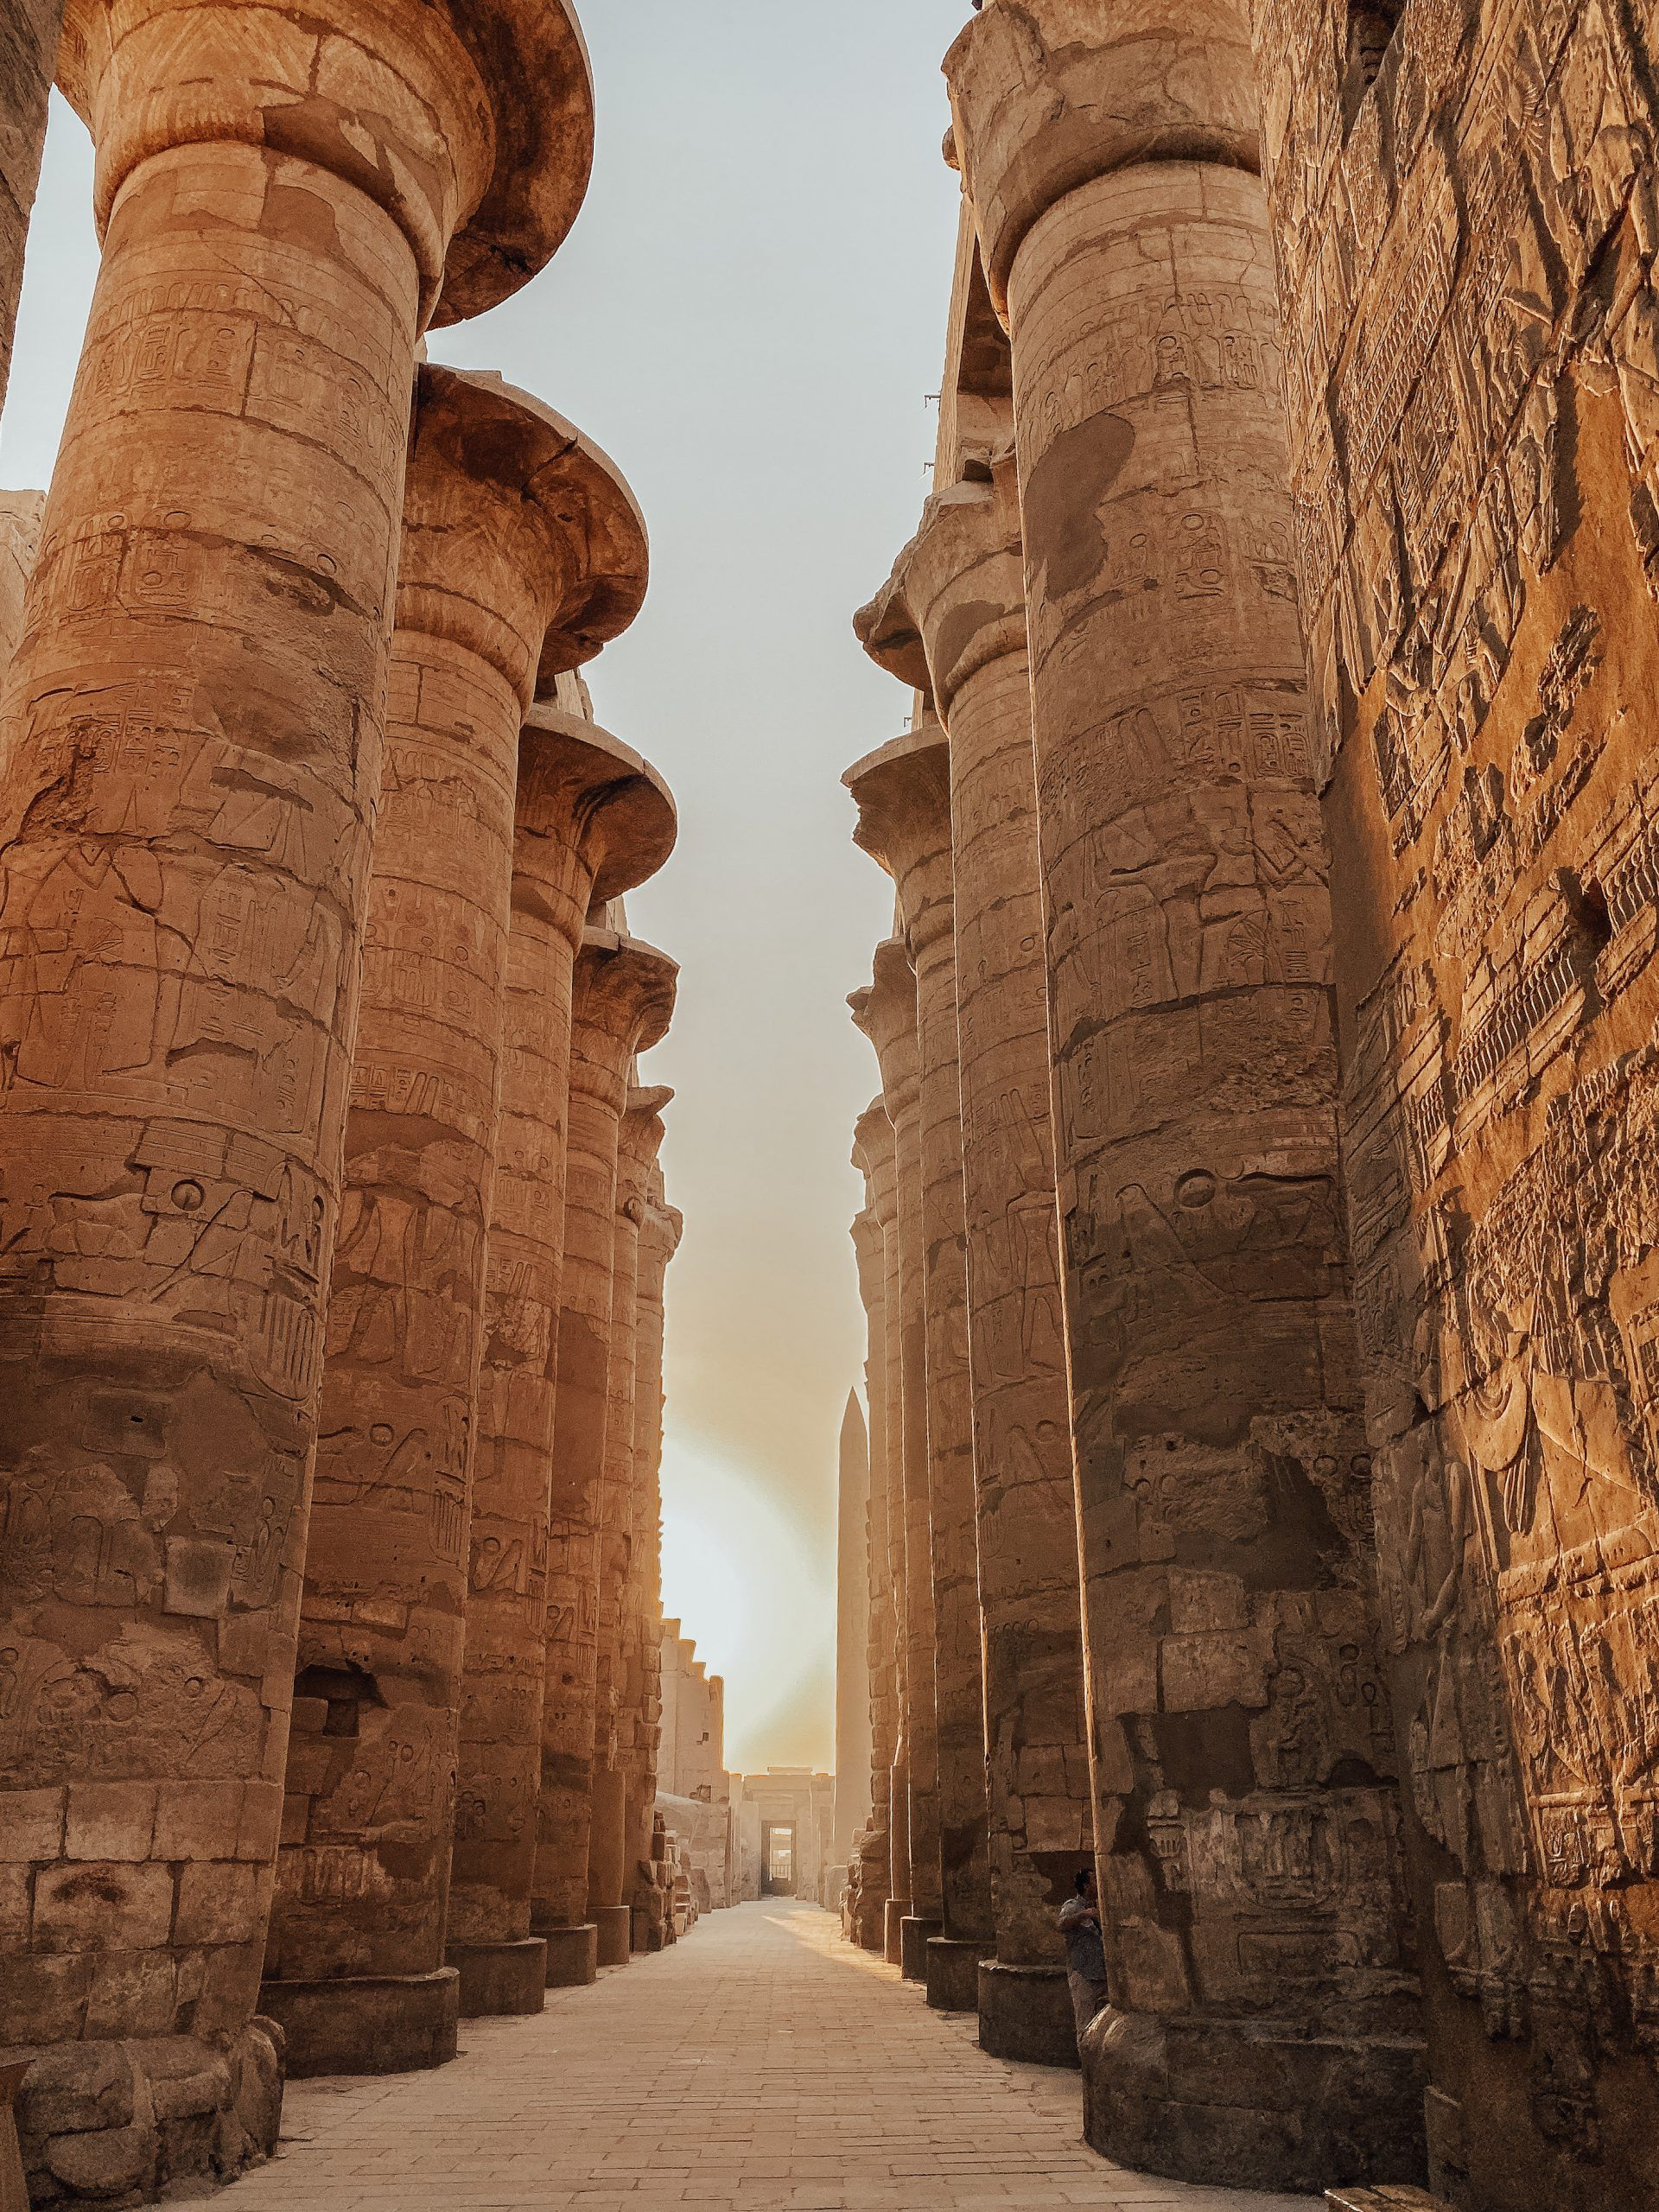 A 10-day itinerary for Egypt. The best places to stay and visit in Cairo, Luxor, Aswan and Dahab. See extraordinary sights like the Pyramids of Giza, Luxor Temple and more.